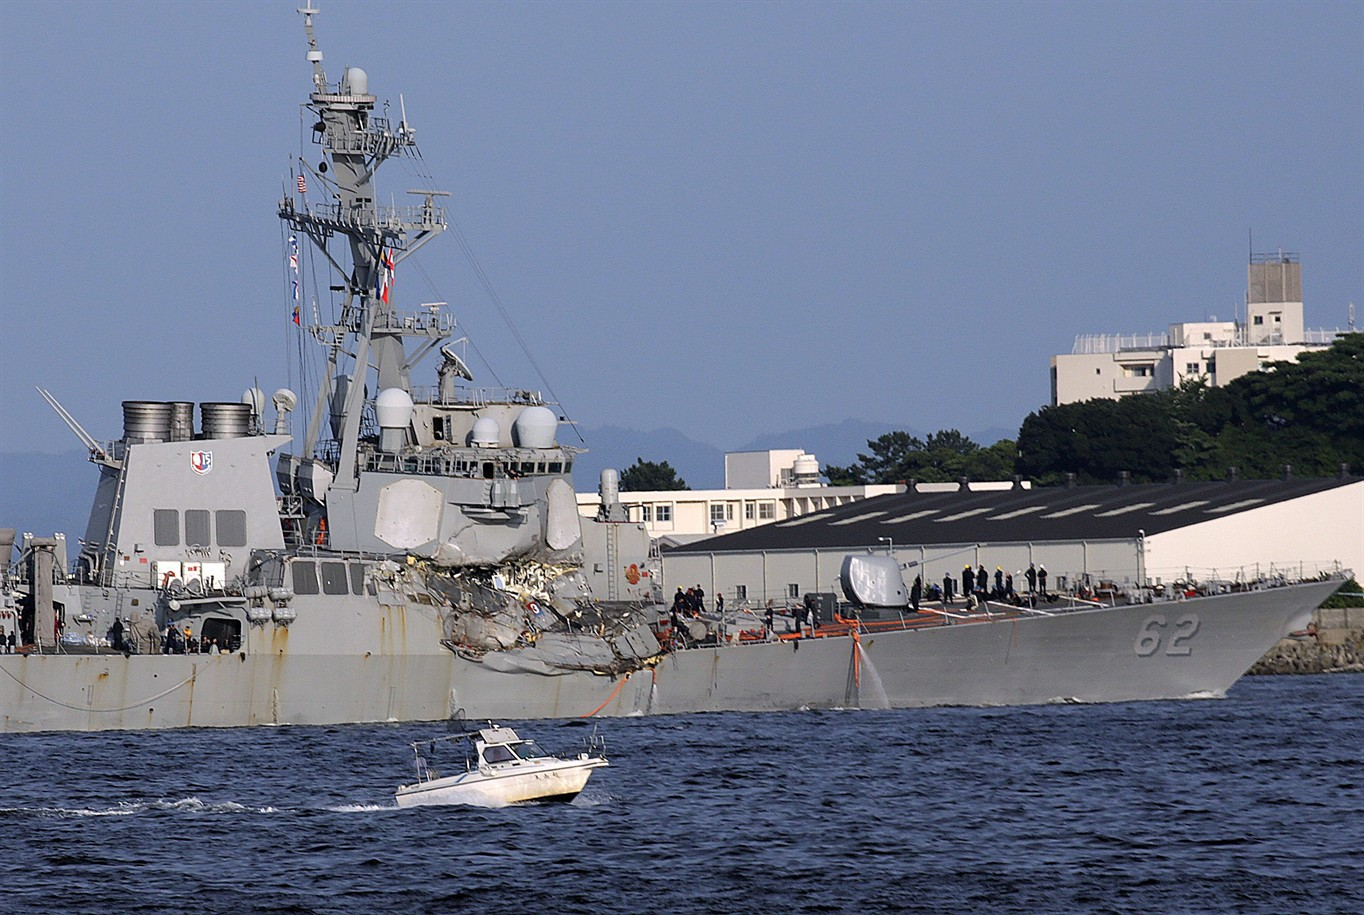 Search for 7 Navy sailors ends after bodies found on ship